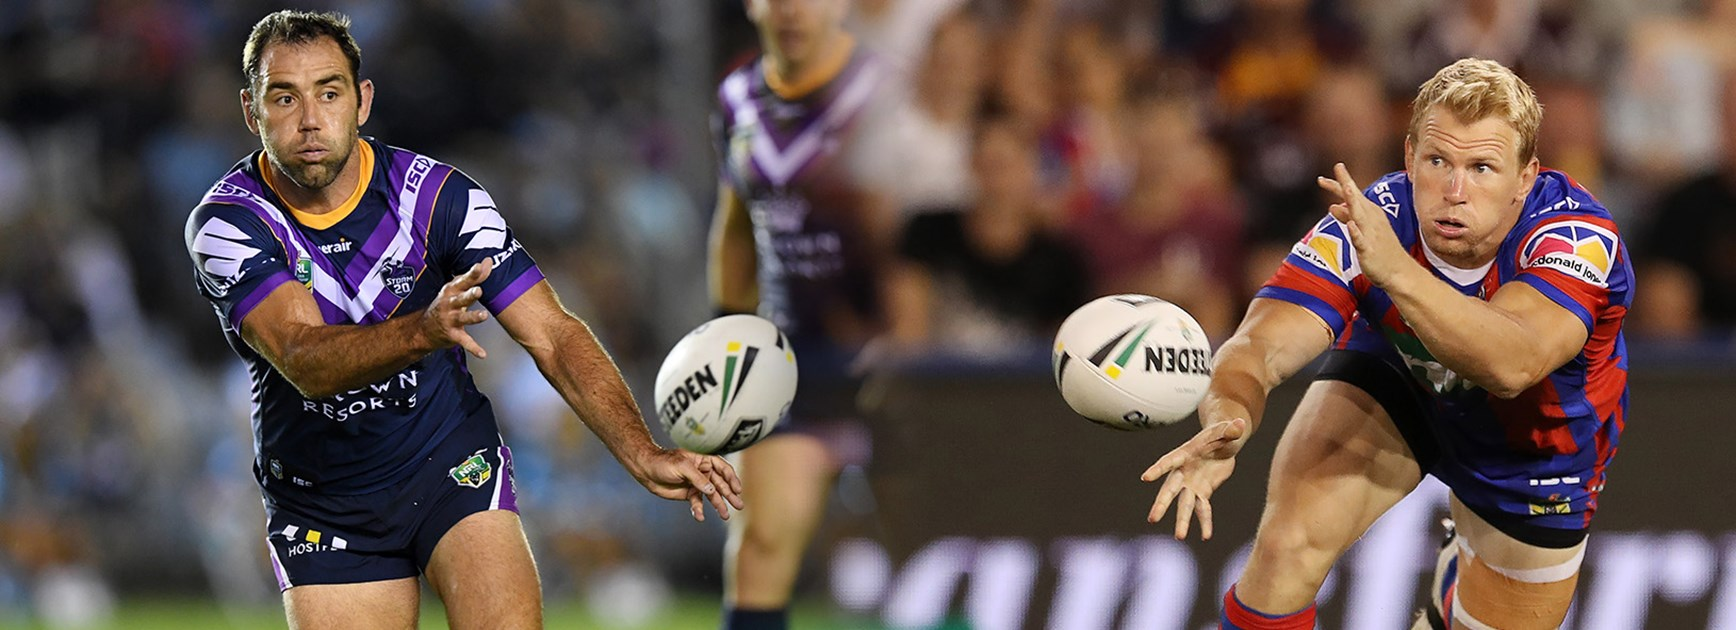 NRL match preview: Round 6